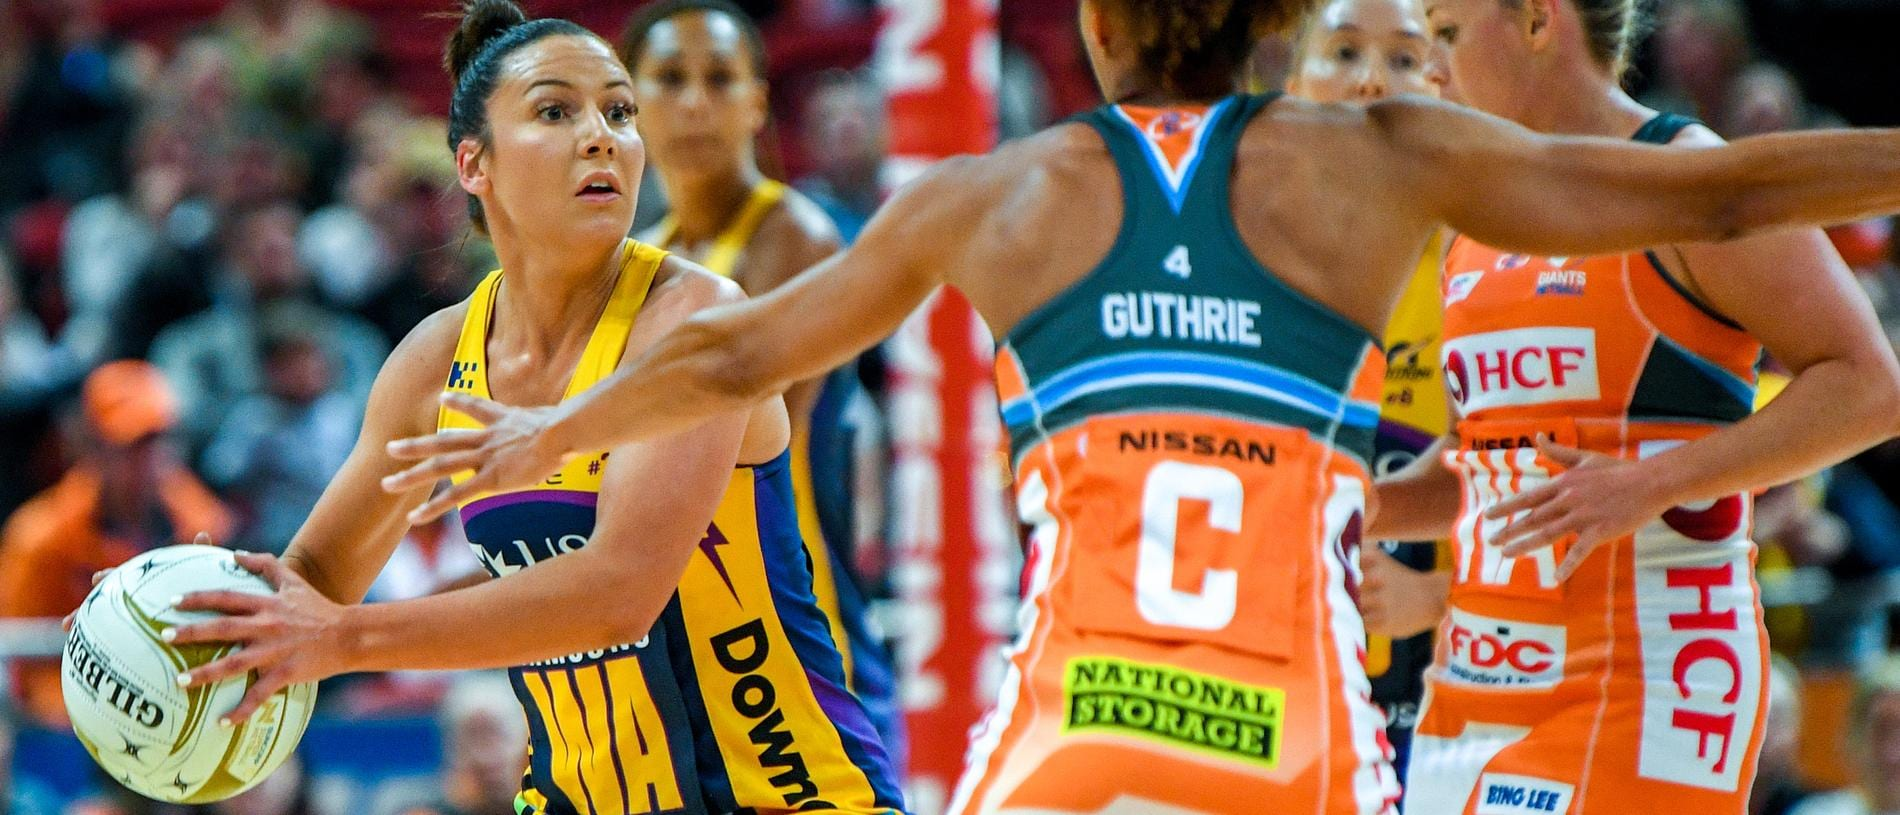 Kelsey Browne (left) of the Lightning competes for possession against Serena Guthrie of the Giants during the Super Netball Preliminary Final between Giants Netball and the Sunshine Coast Lightning at Qudos Bank Arena in Sydney, Sunday, August 19, 2018. (AAP Image/Brendan Esposito) NO ARCHIVING, EDITORIAL USE ONLY